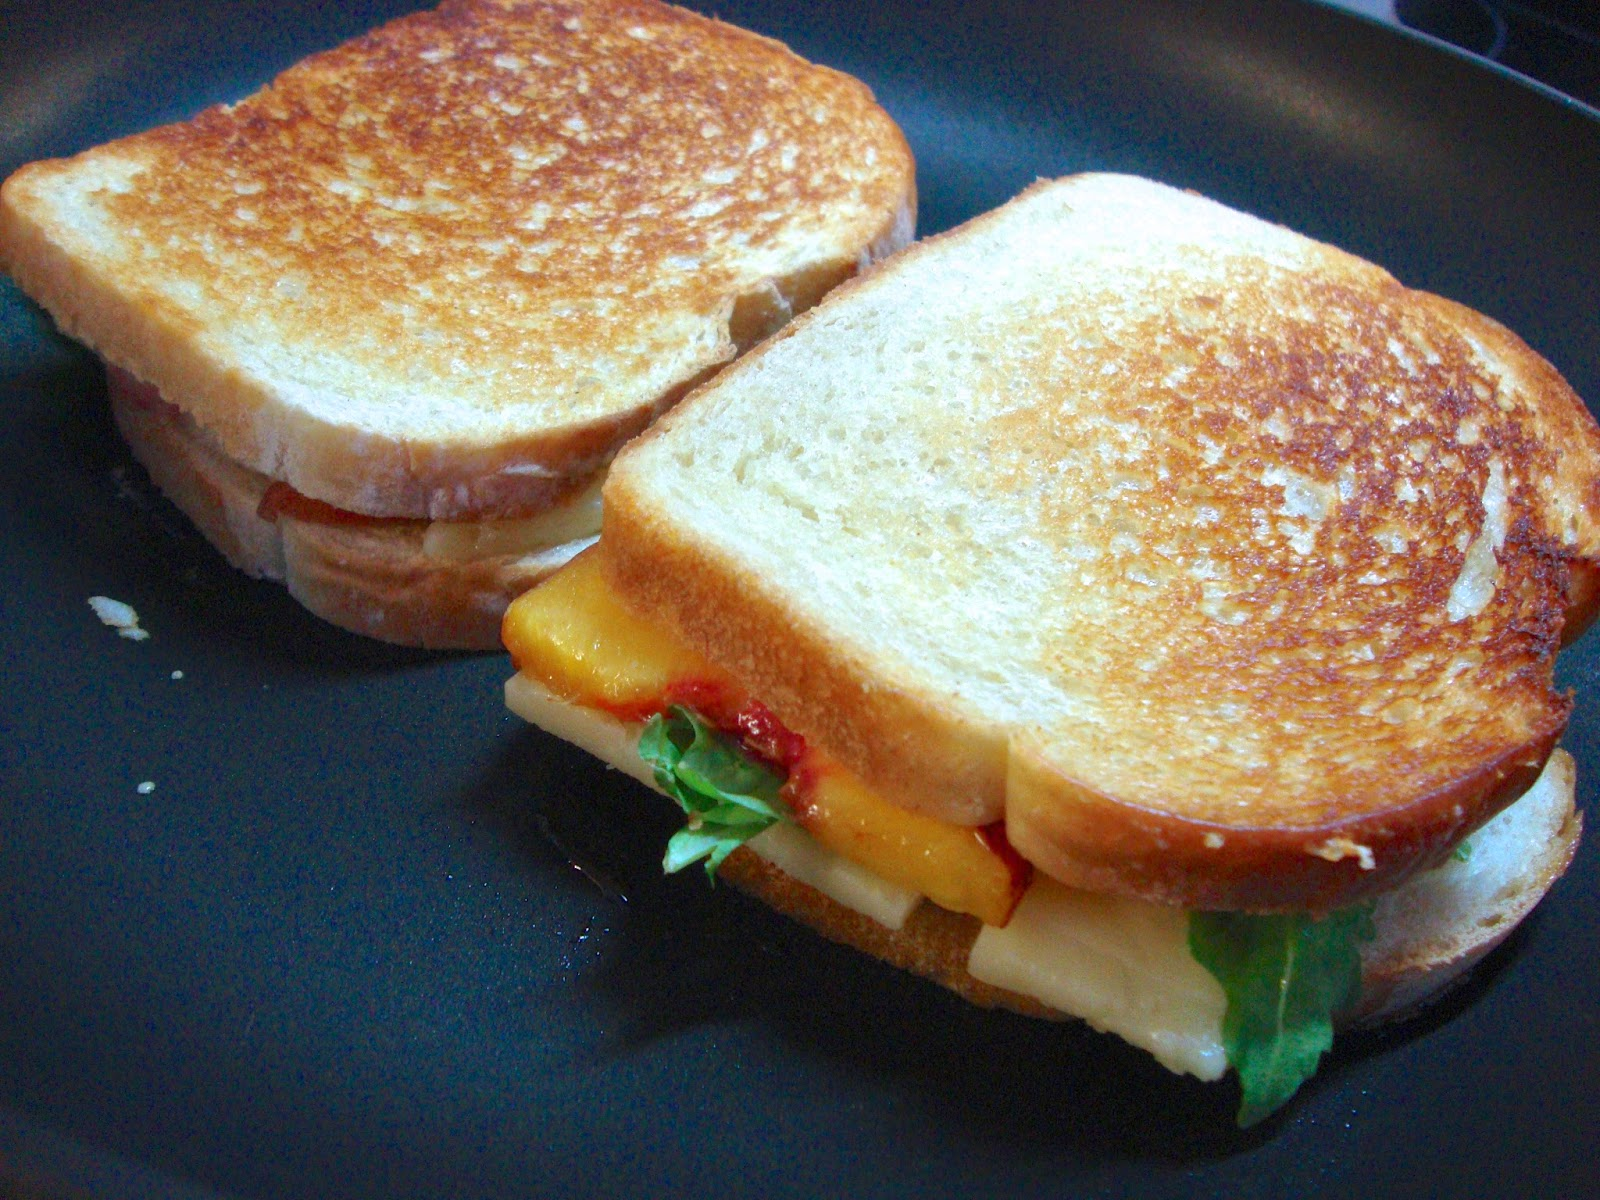 Carrie's Creations: Peach, Arugula and White Cheddar Grilled Cheese